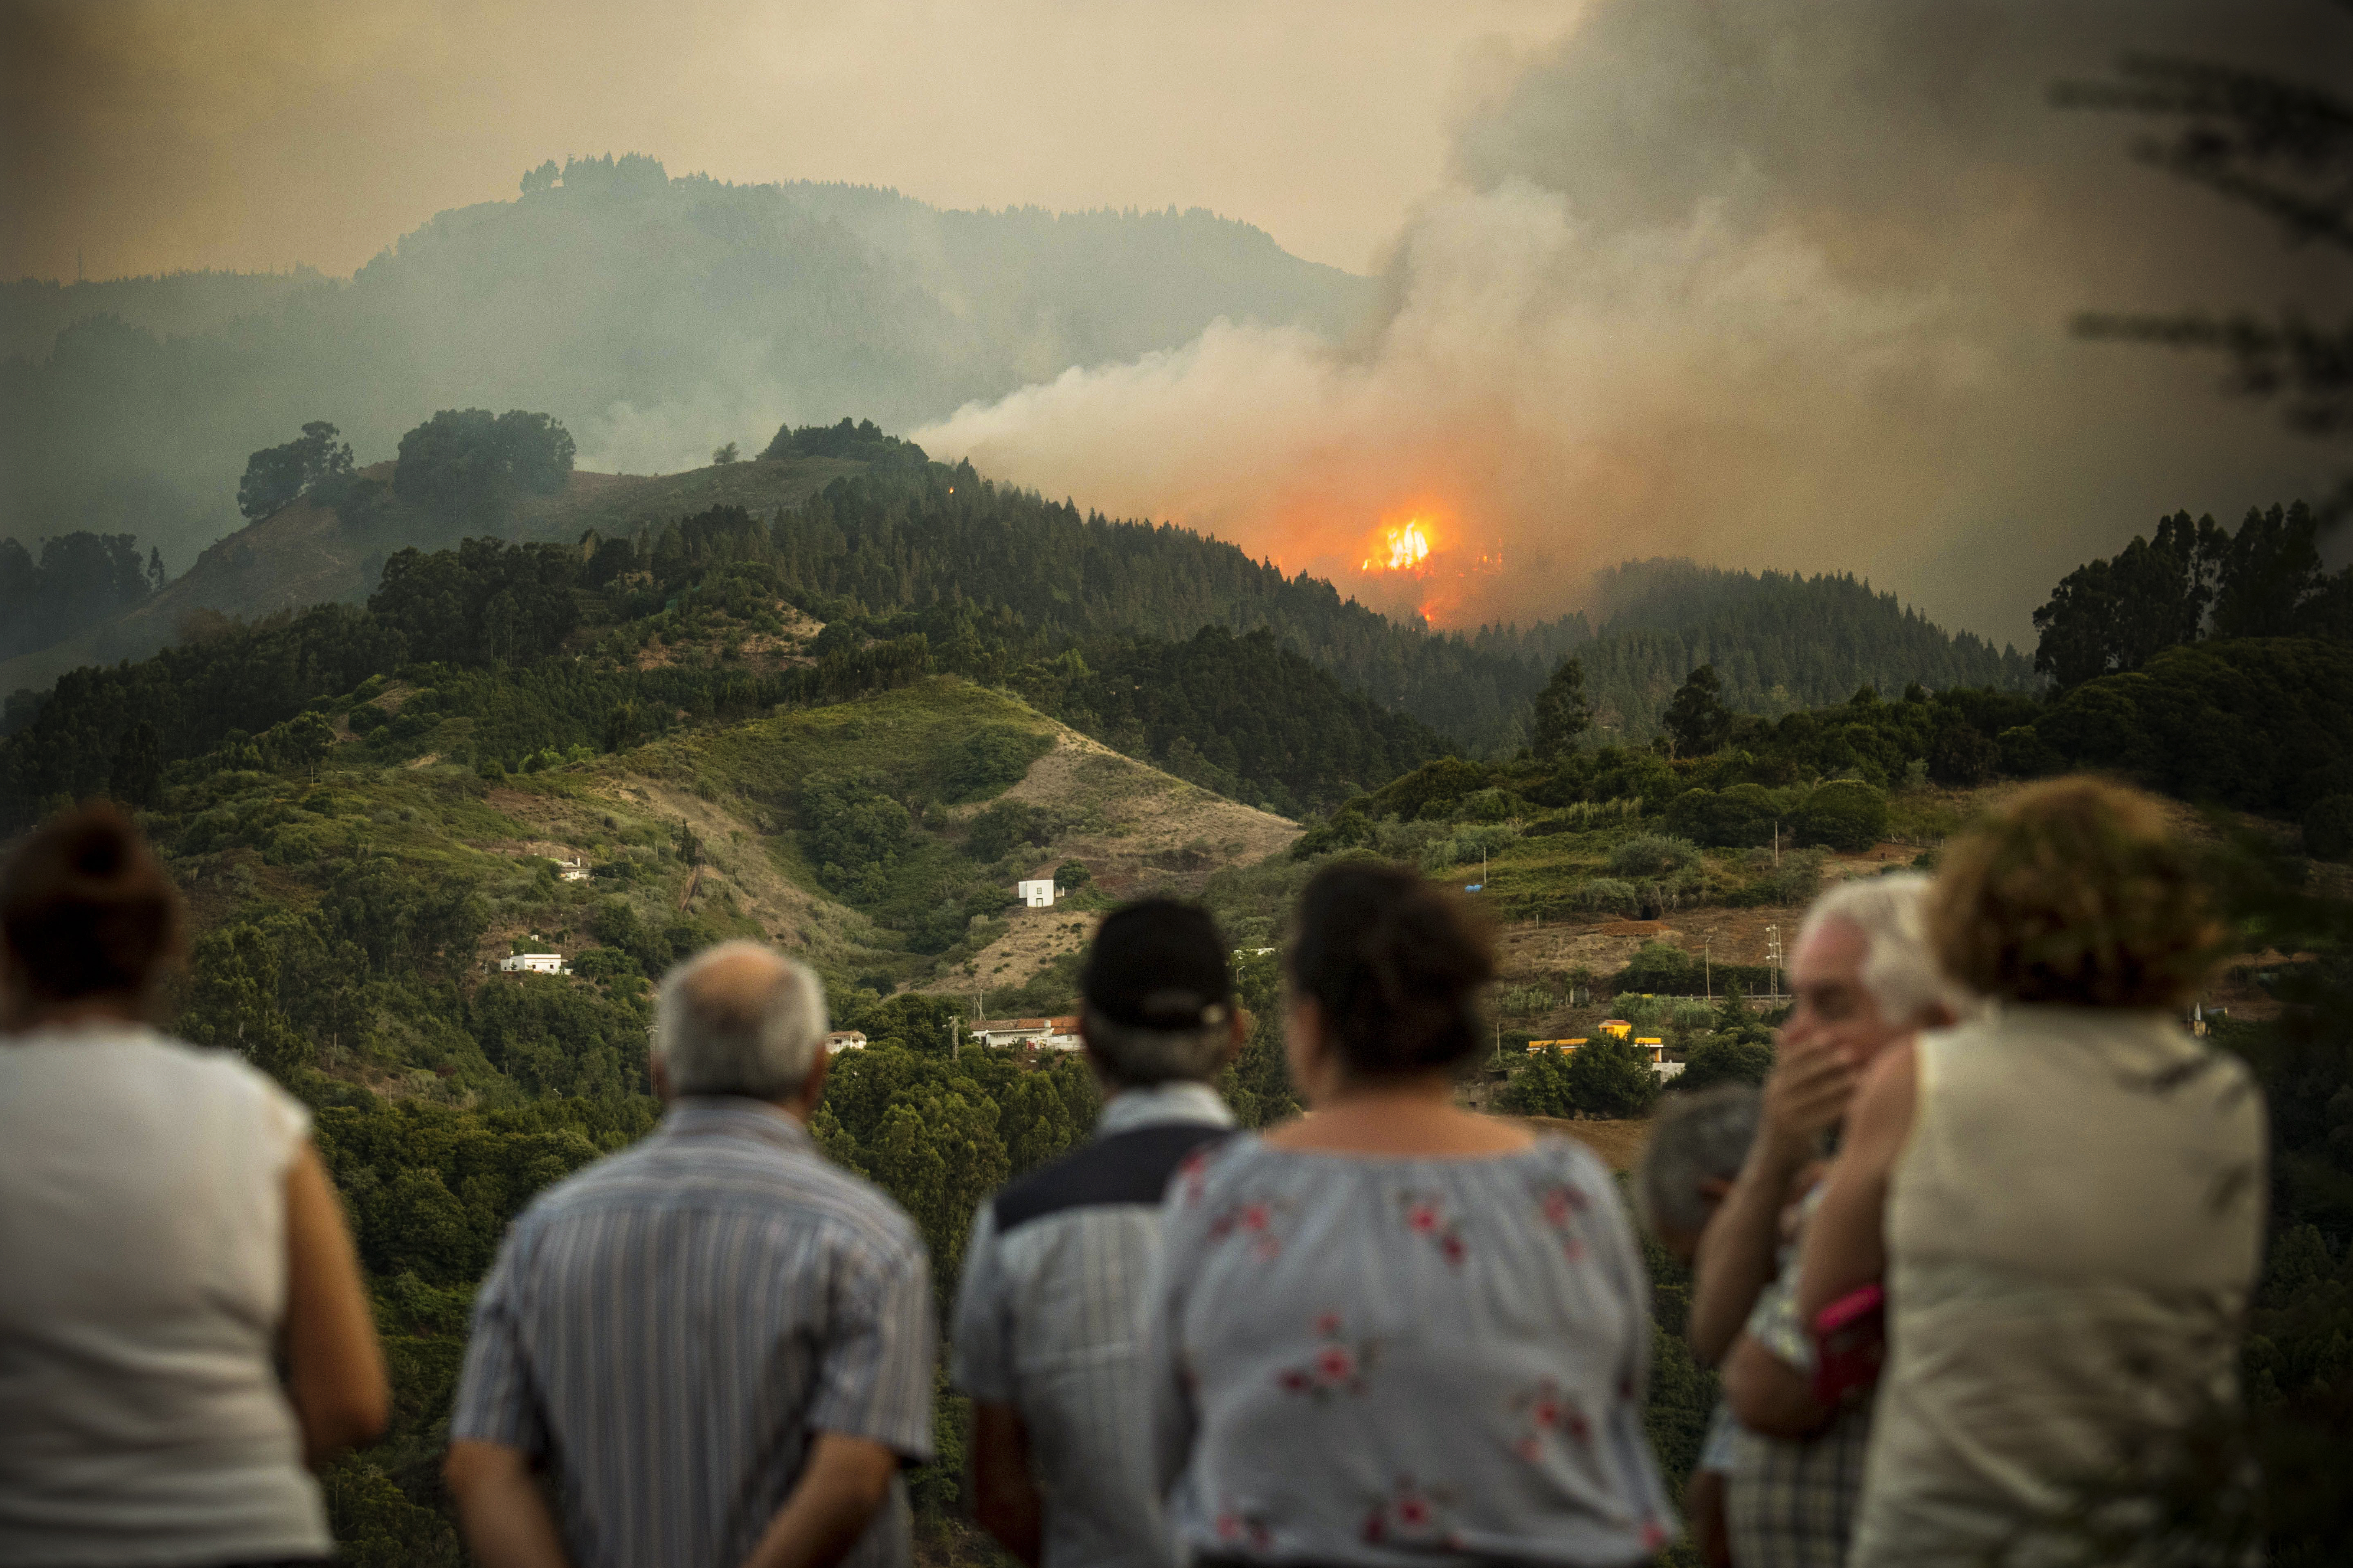 Photos: major wildfires have ignited across Europe, Asia, and Latin America